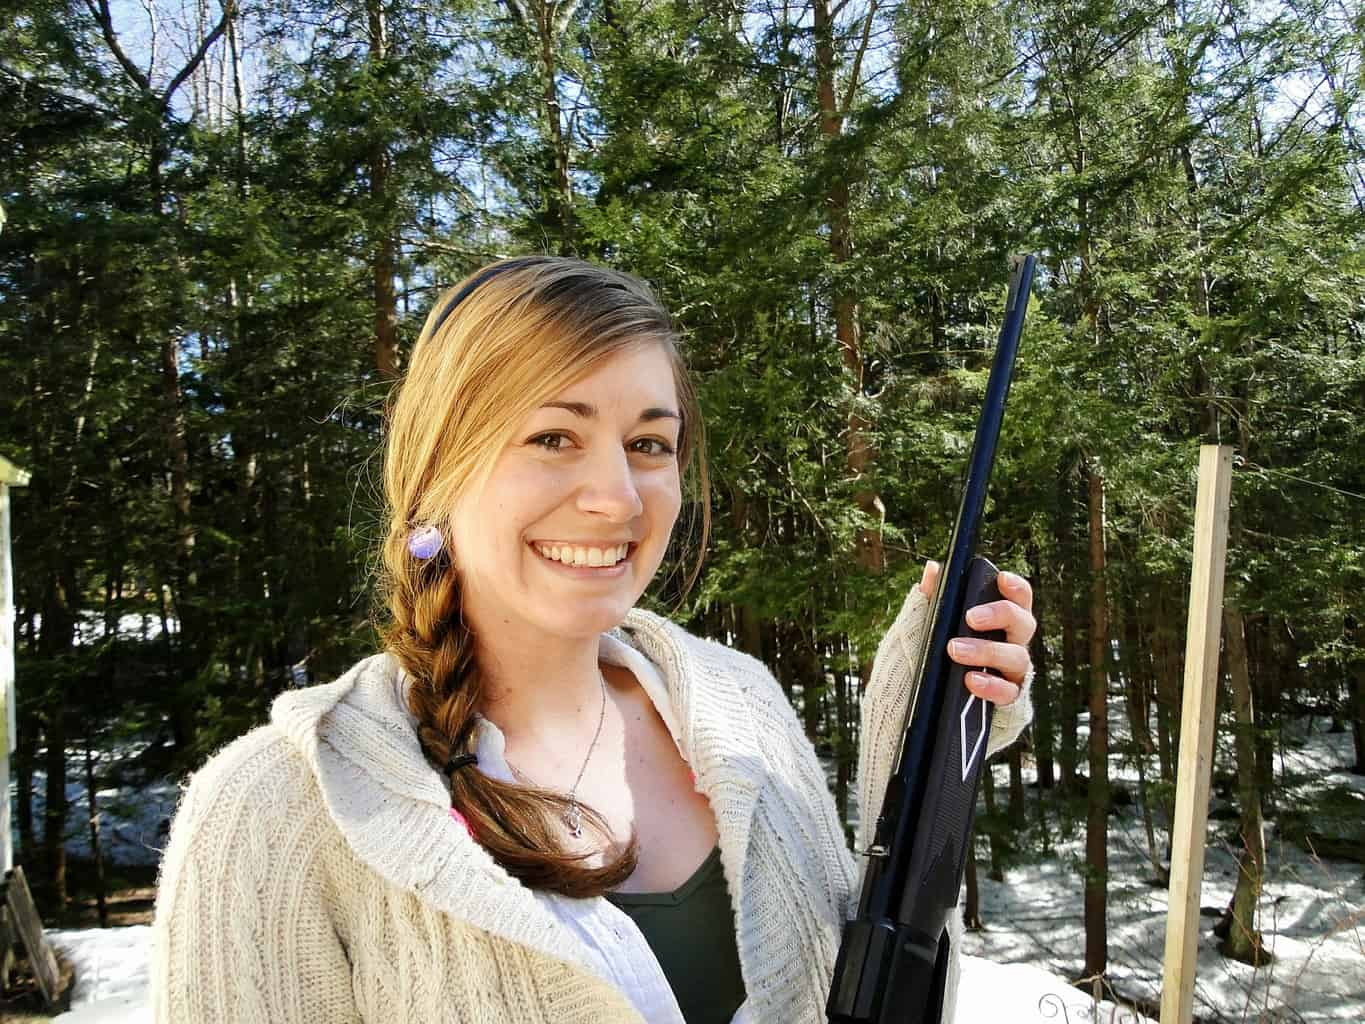 Woman wondering if she needs a gun permit to shoot at a gun range in Delaware